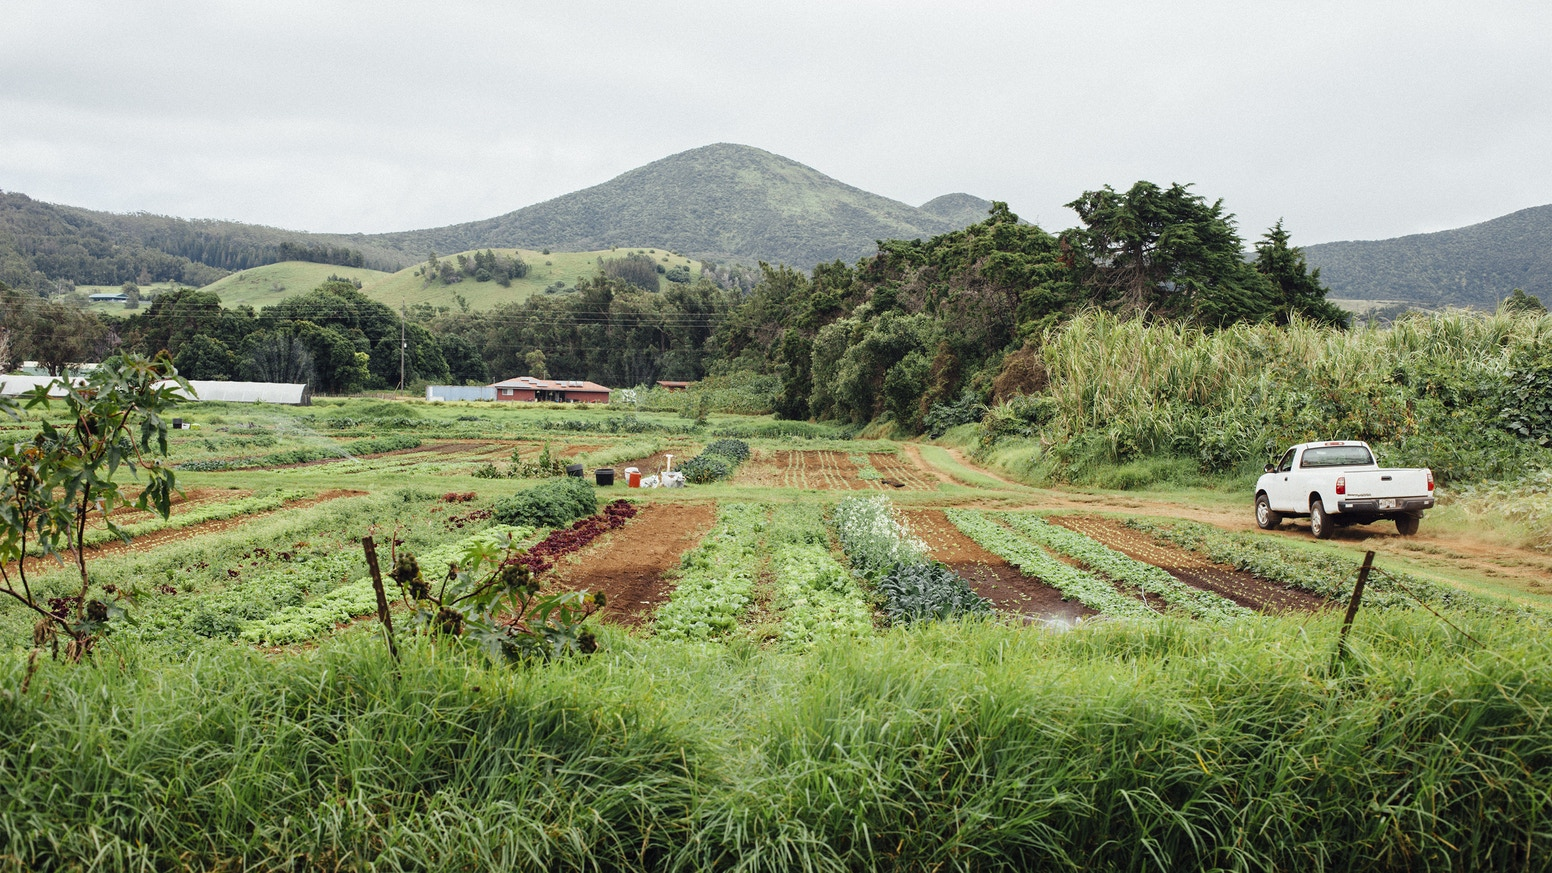 Through vivid photos and essays, our book showcases an inspiring group of men and women who are revitalizing foodways in Hawaii.